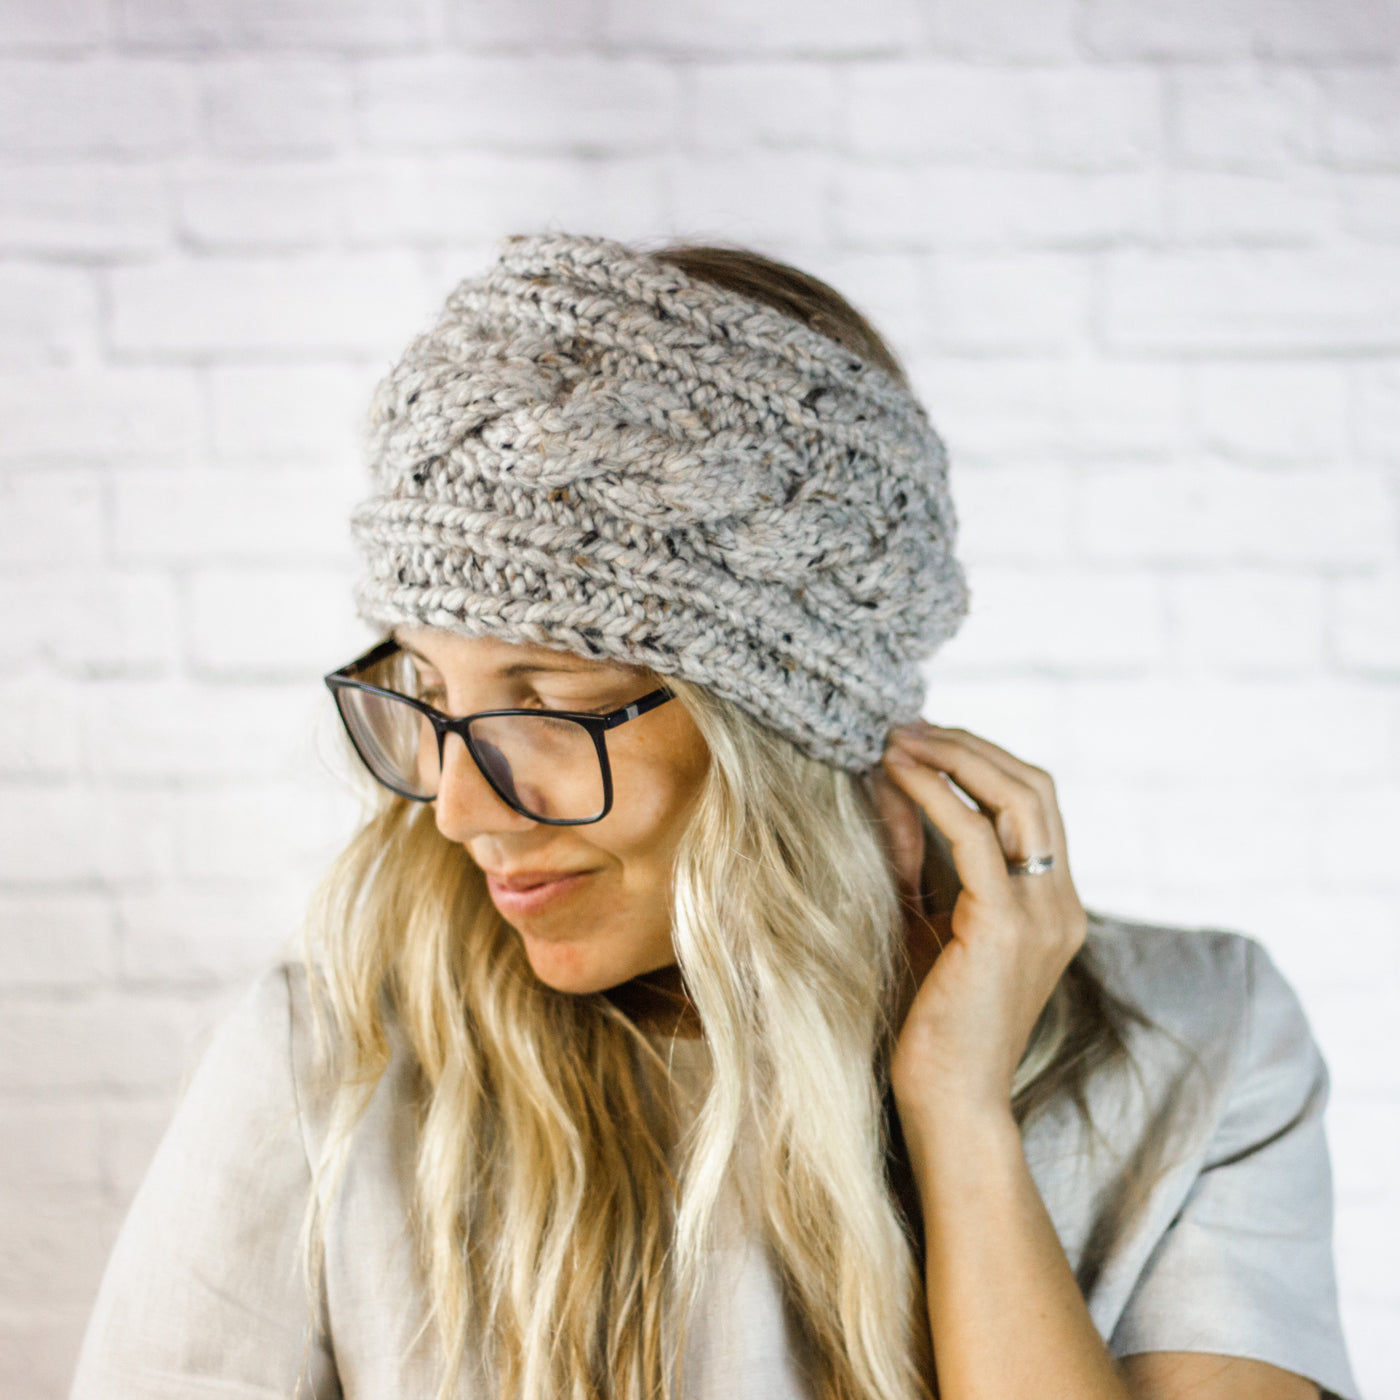 Wheatfield Knitwear Headbands Ladies Extra Wide Cable Knit Button Ear Warmer Headband in Grey Marble